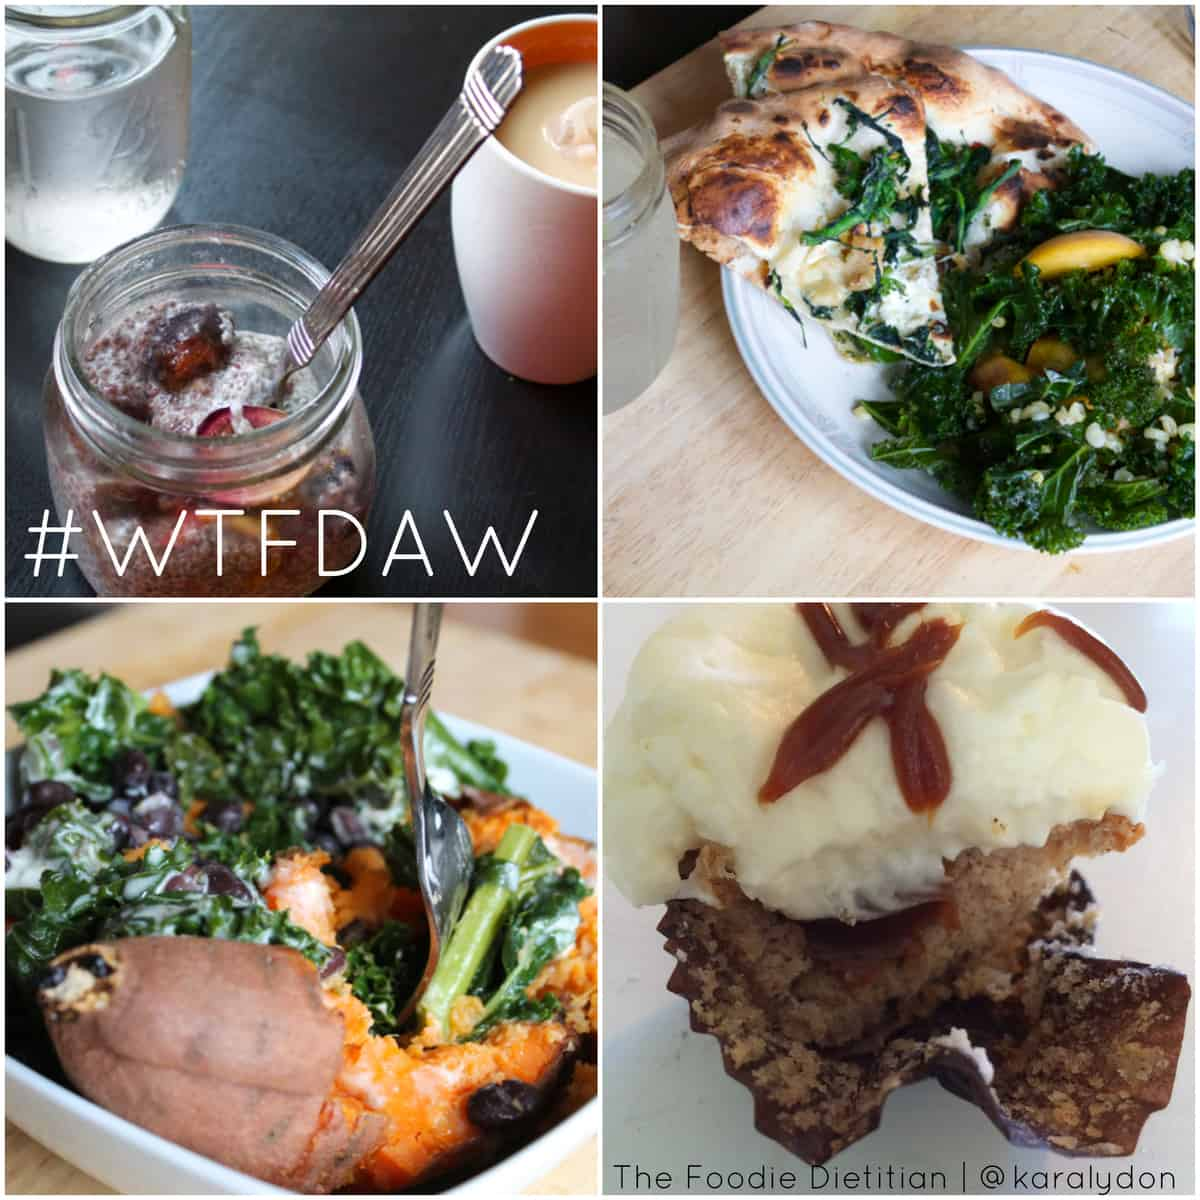 What The Foodie Dietitian Ate Wednesday #WTFDAW | The Foodie Dietitian @karalydon